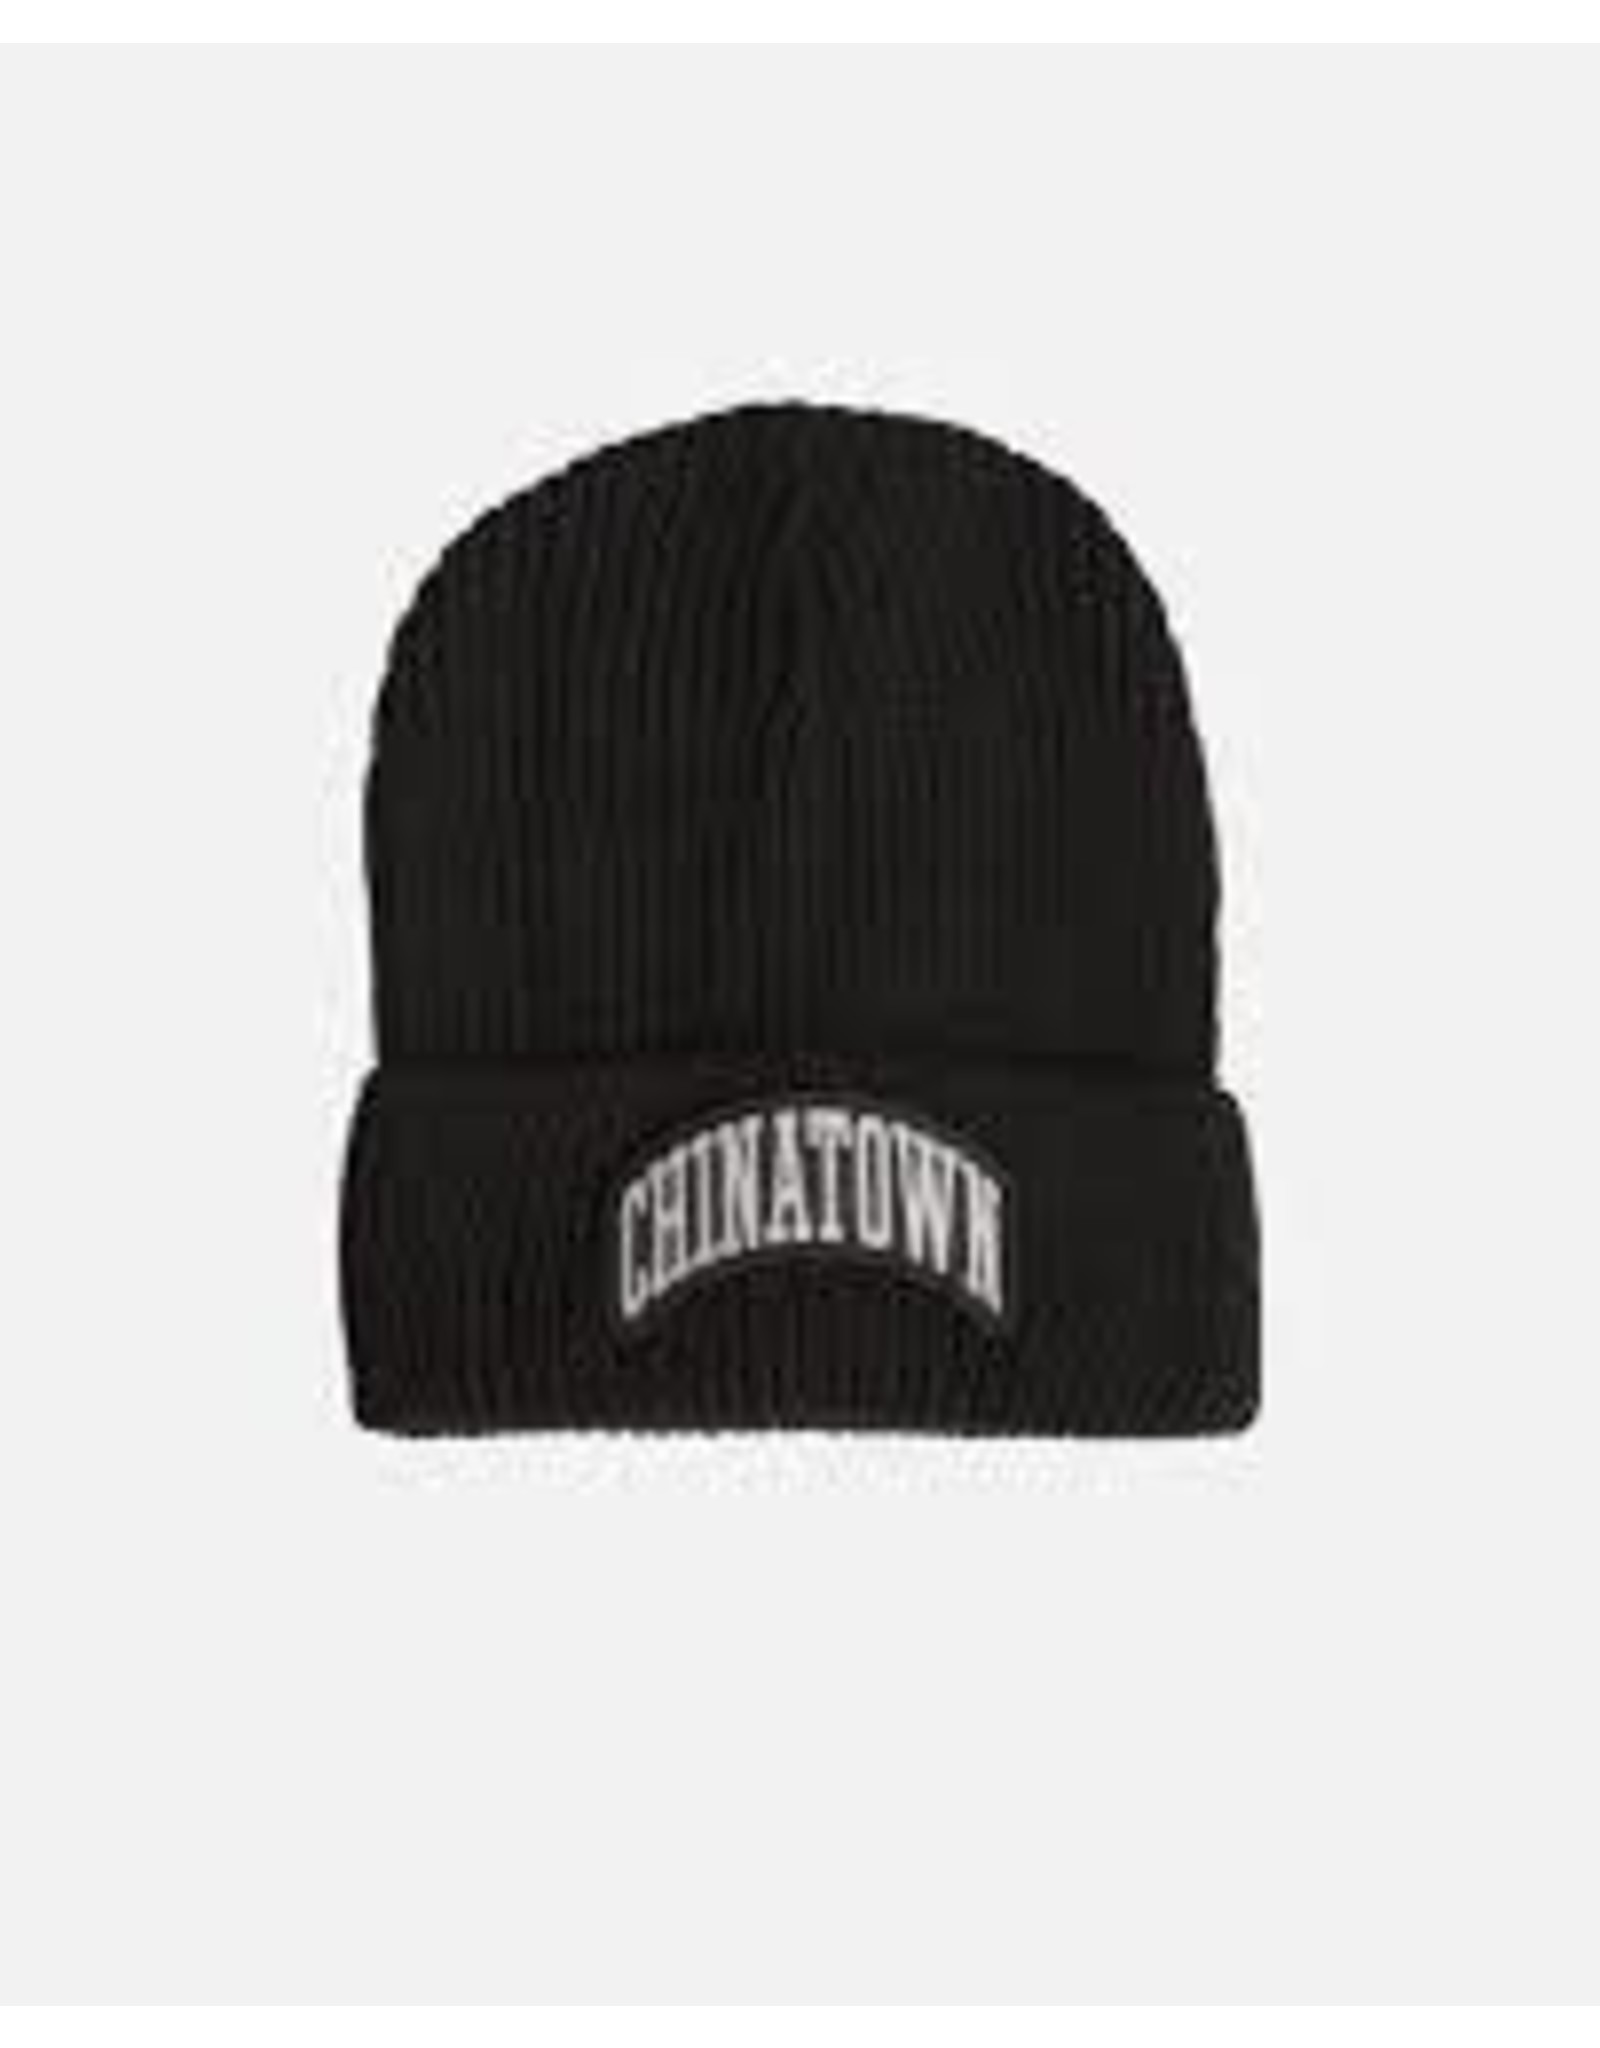 DOUSED-CHINATOWN 3M ARCH BEANIE